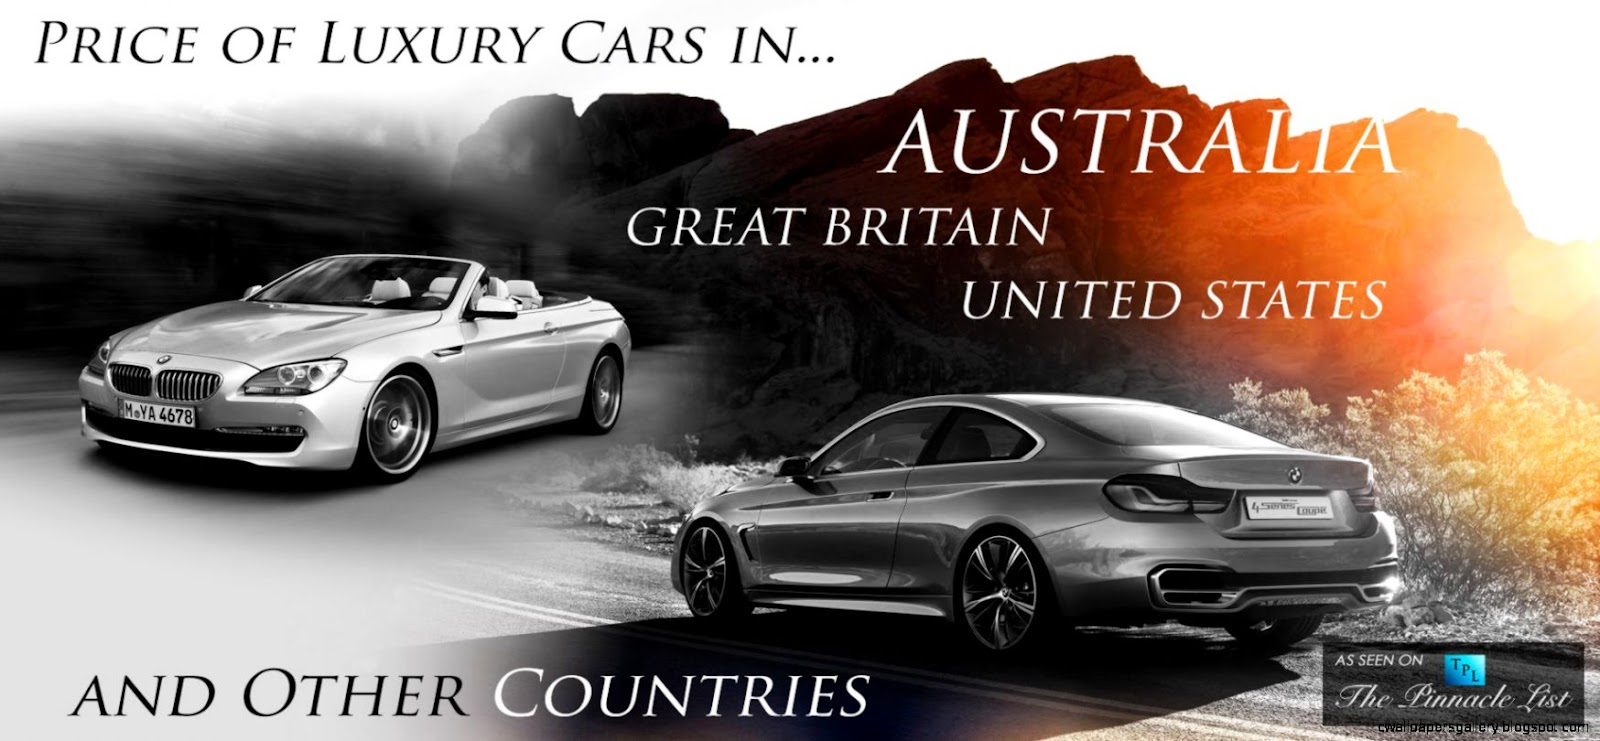 Price of Luxury Cars in Australia vs Great Britain America and